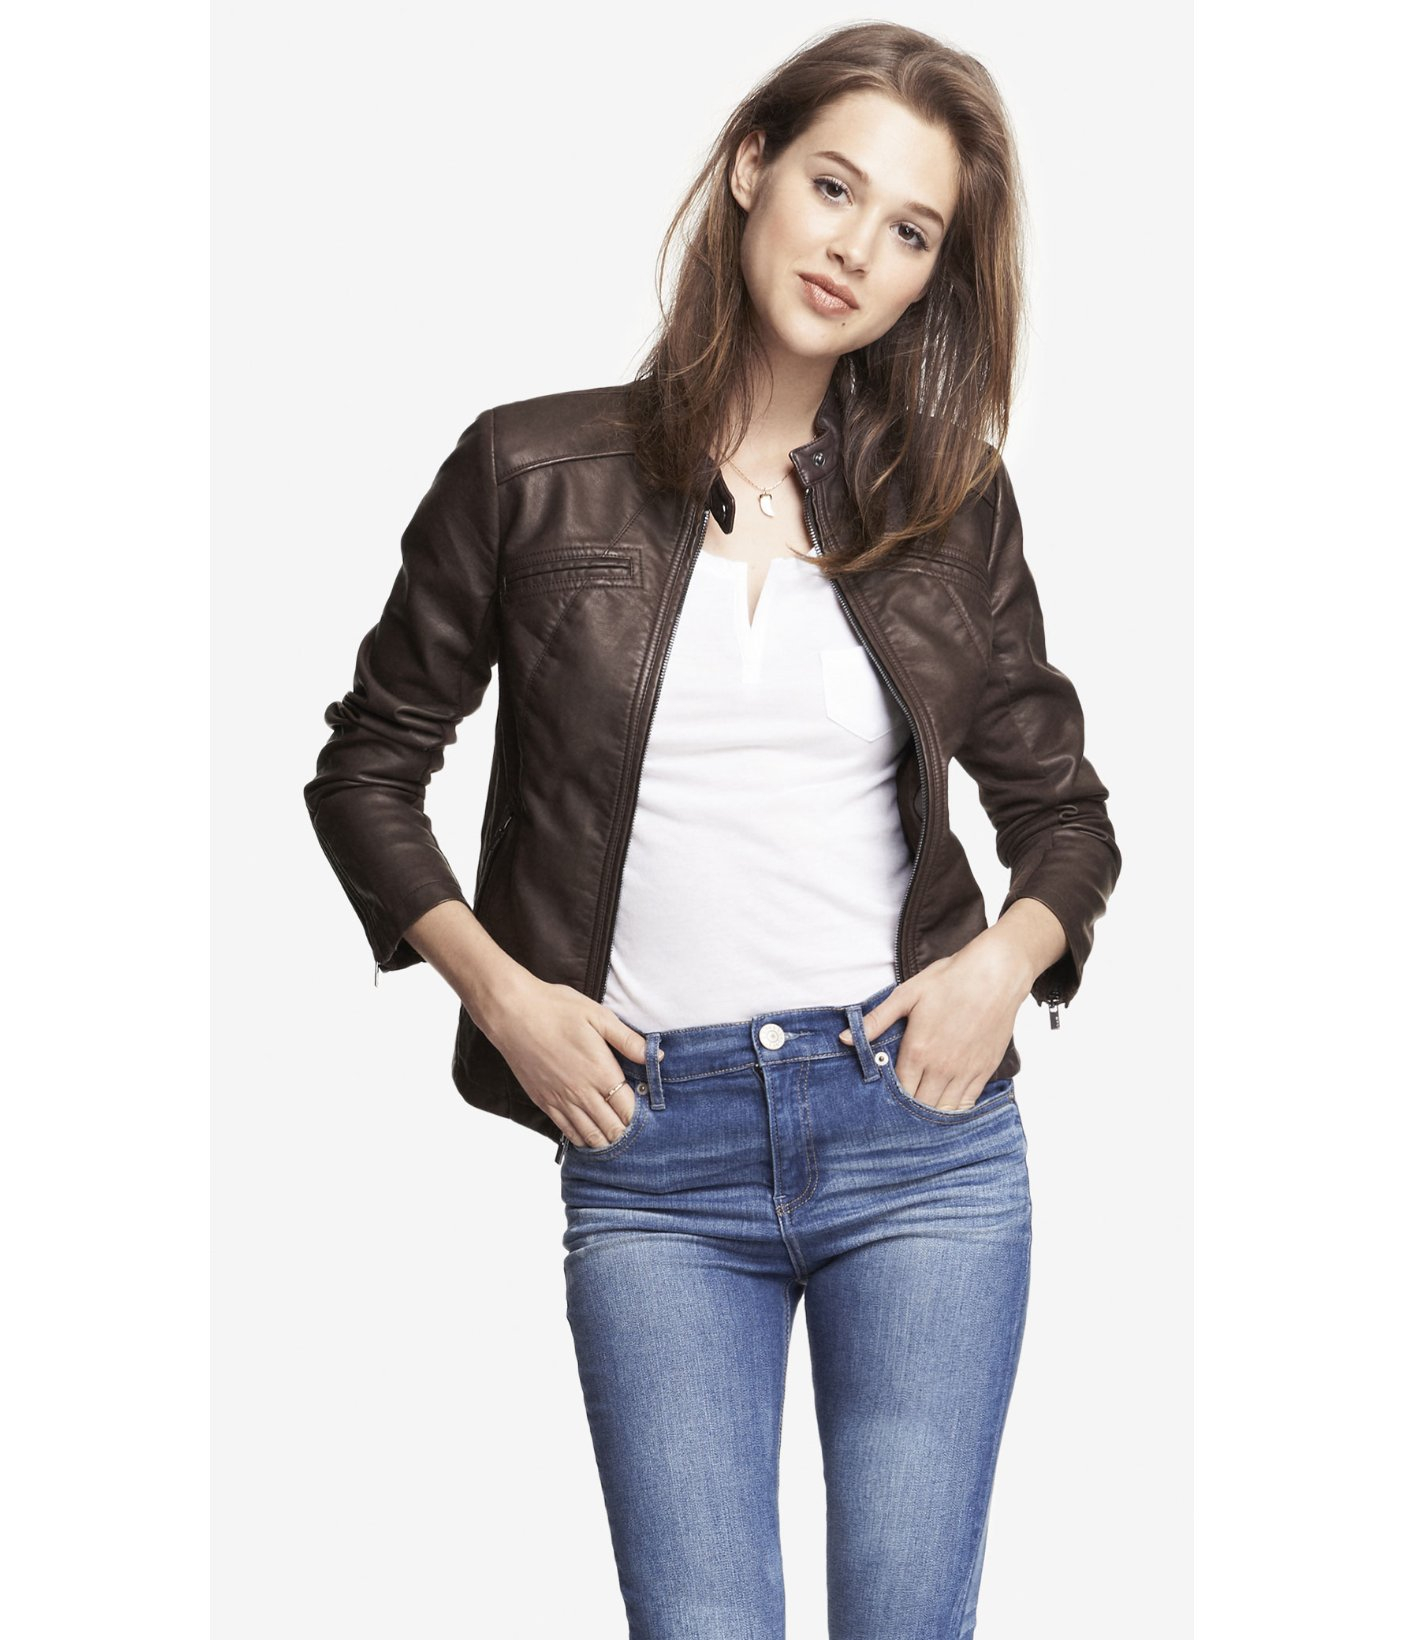 Leather jackets express